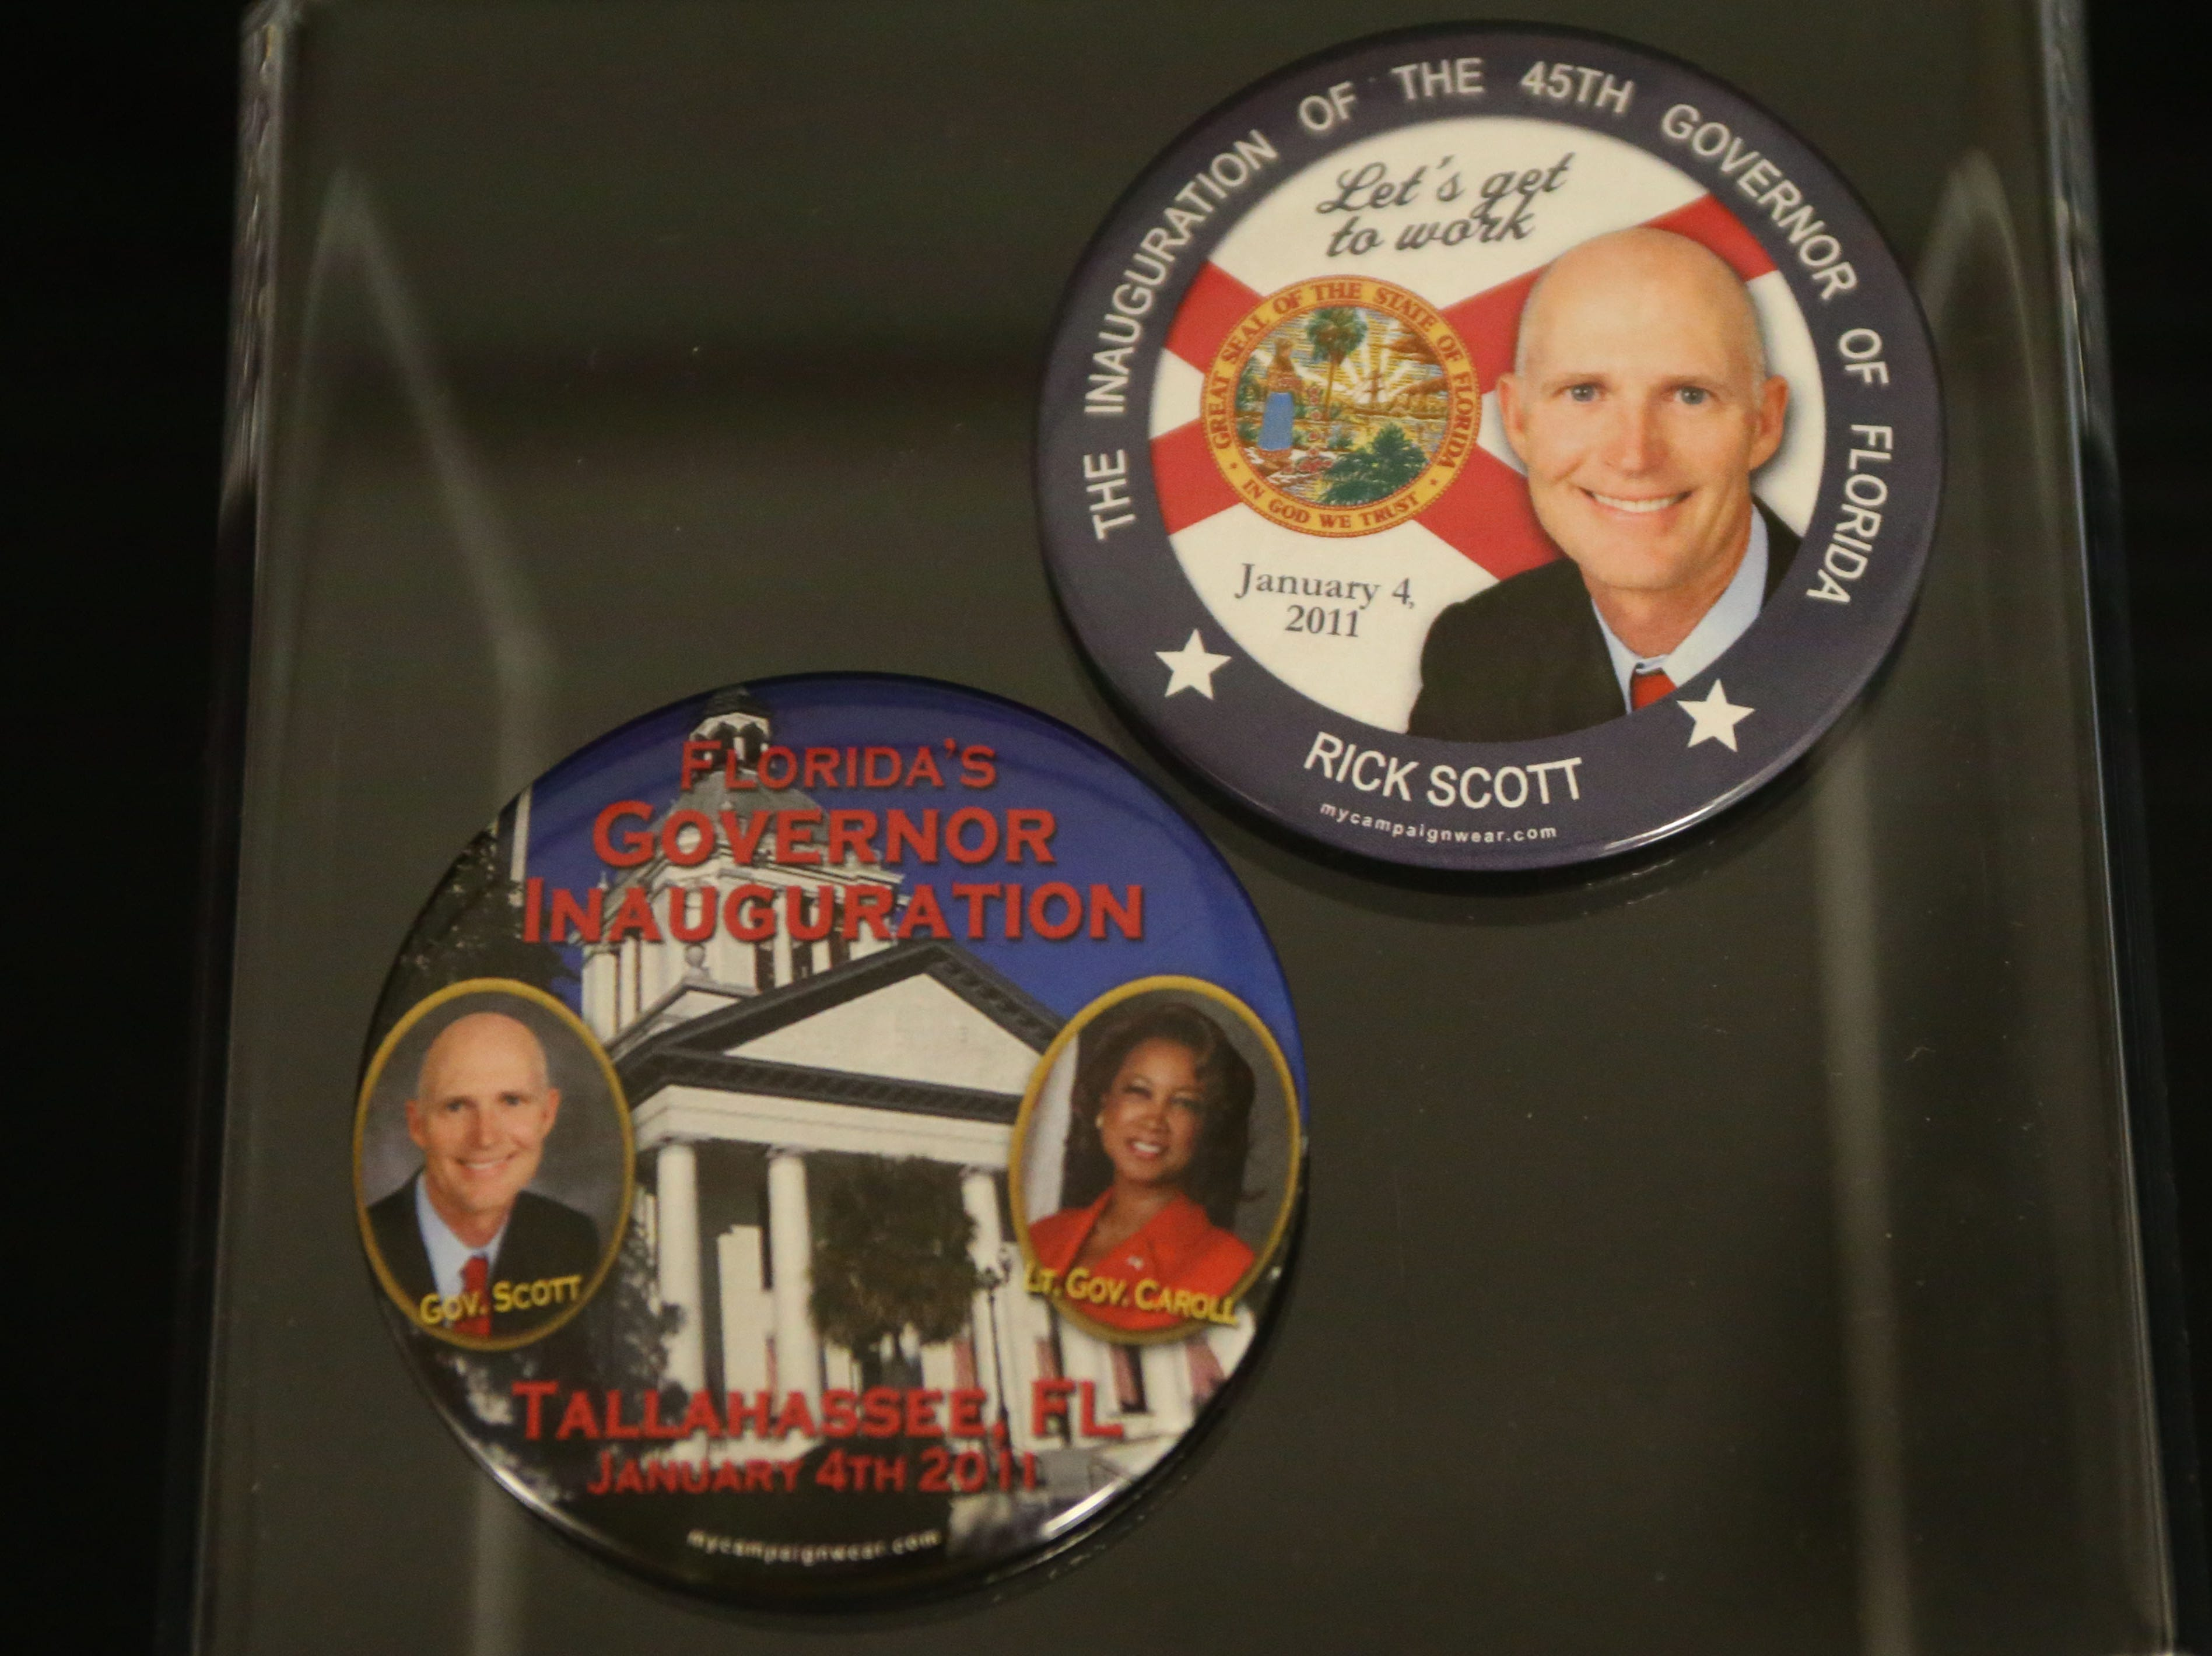 The Tallahassee historic Capitol hosts an exhibit on inaugurations of years past, Wednesday, Nov. 28, 2018. Displayed are buttons that Rick Scott gave out at his inauguration.